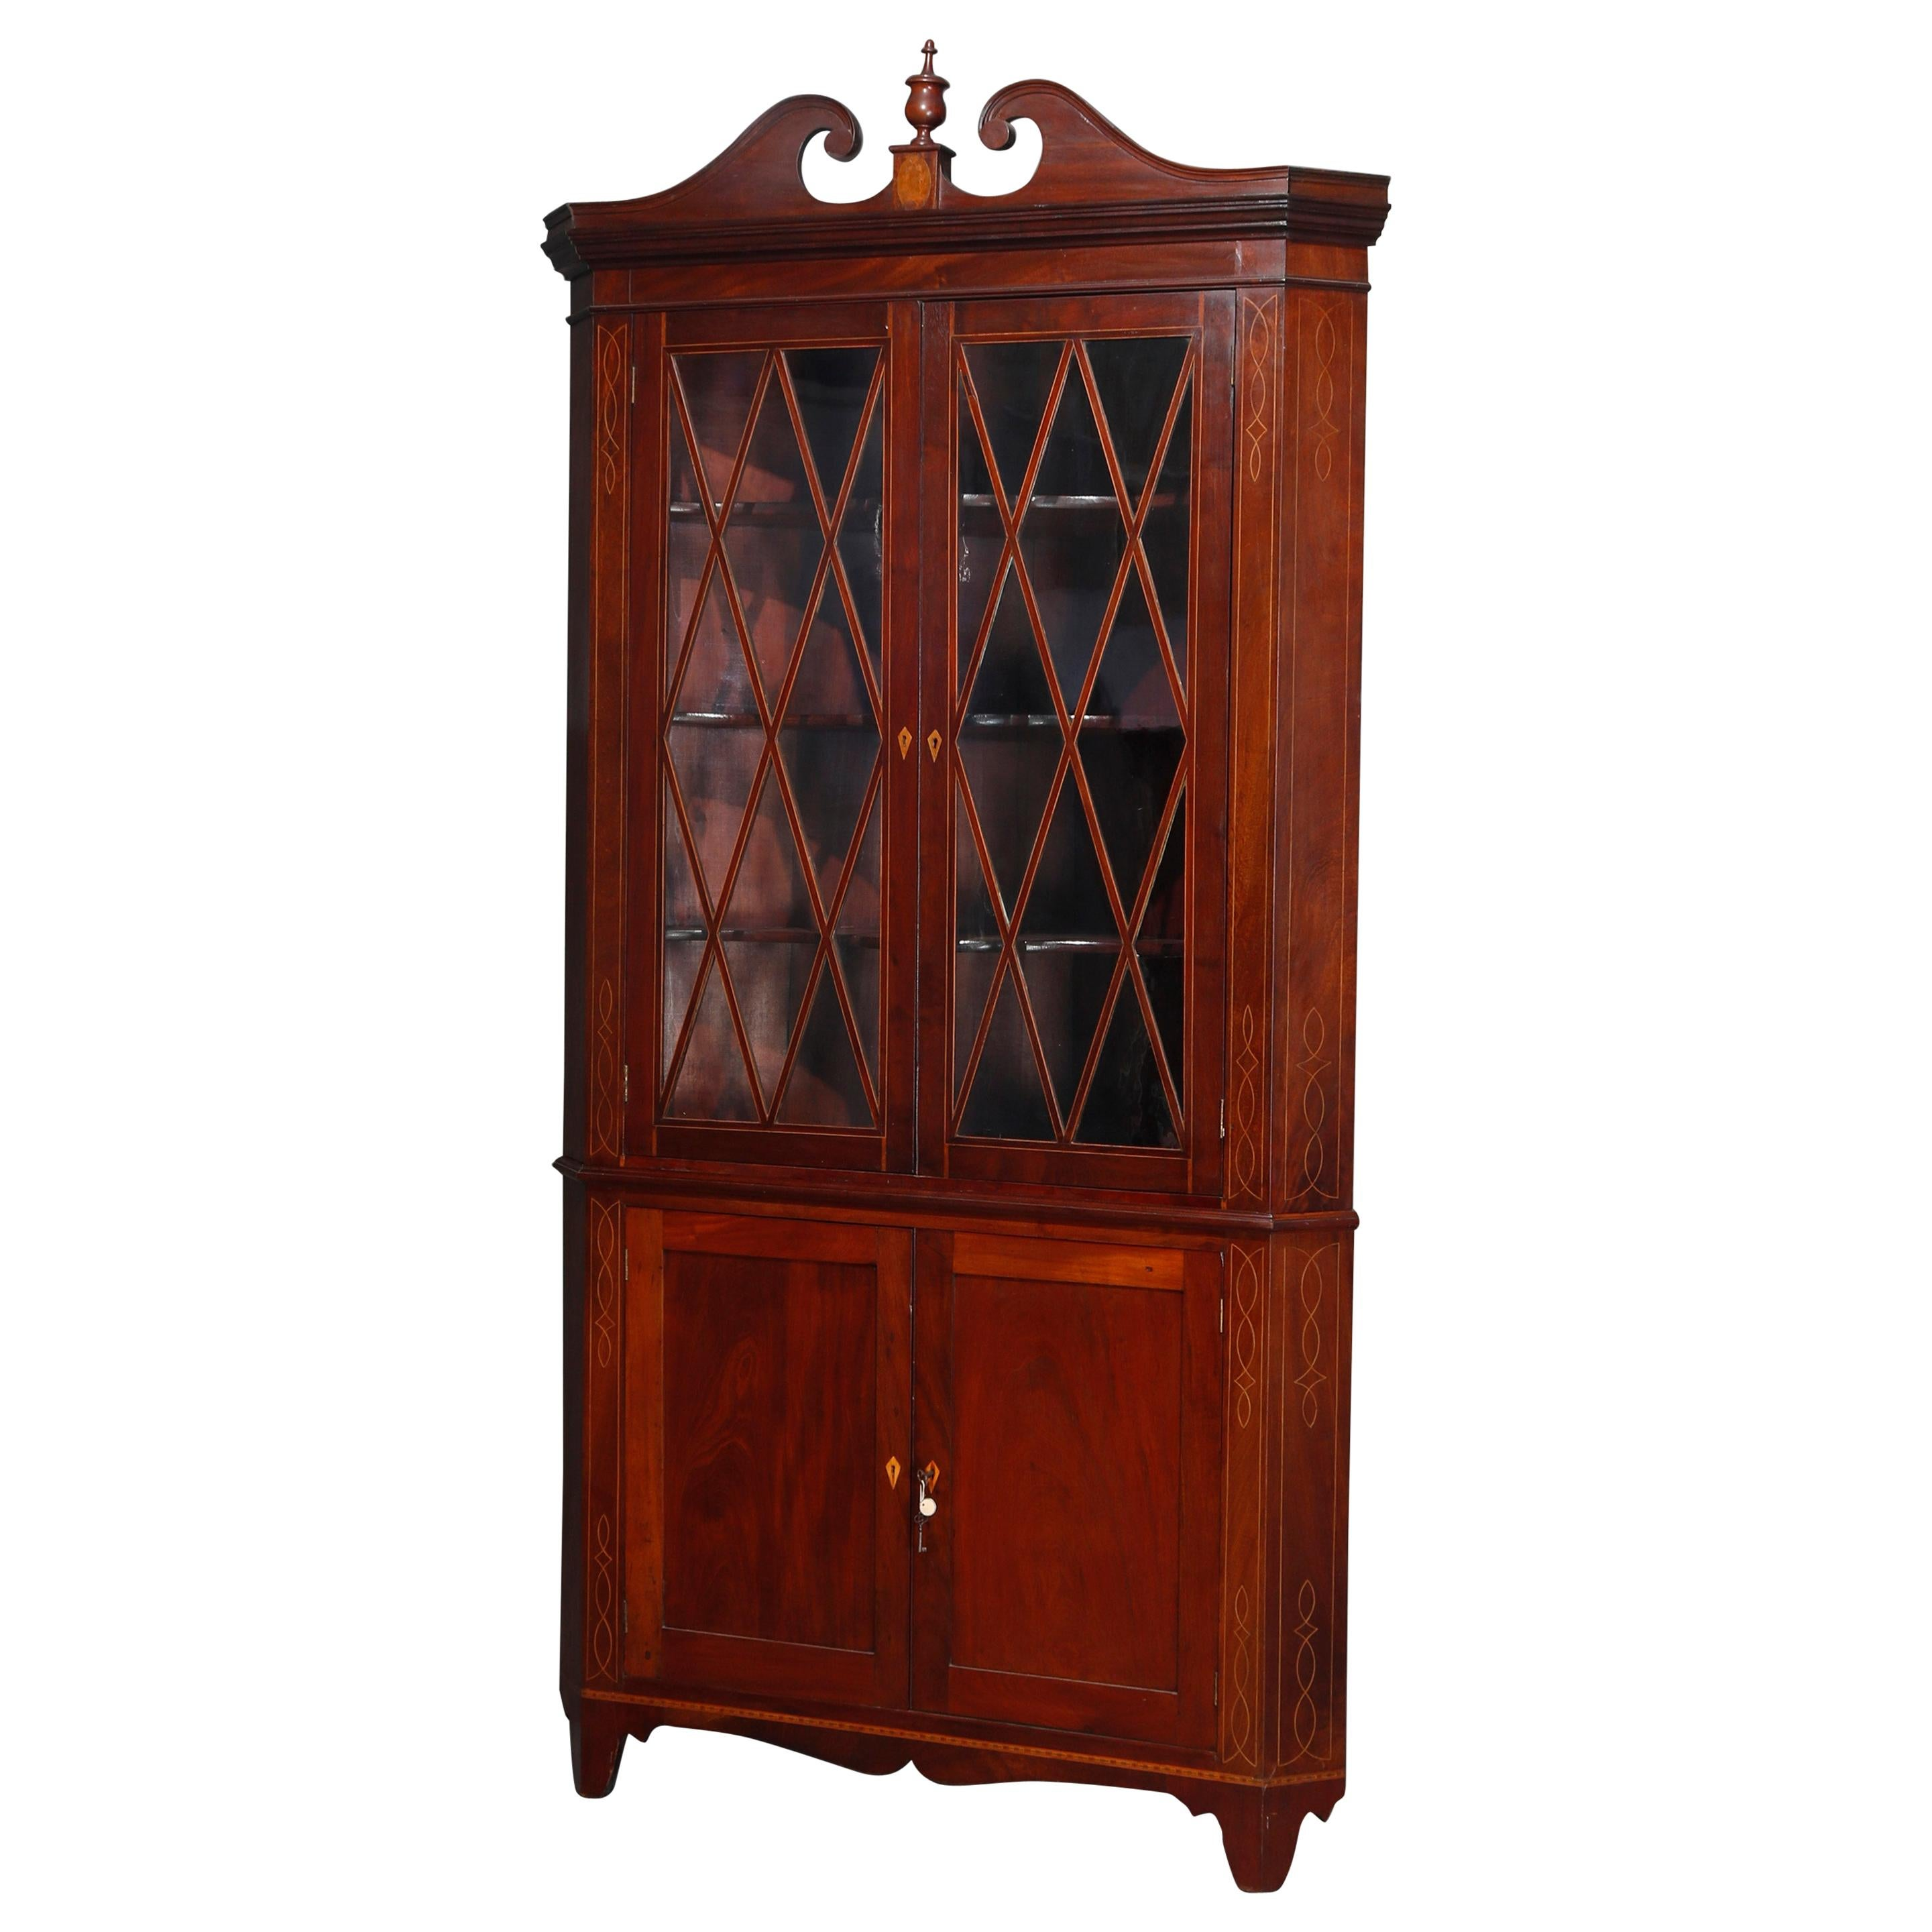 Federal Mahogany with Satinwood Inlay and Banding Corner Cabinet, 20th Century